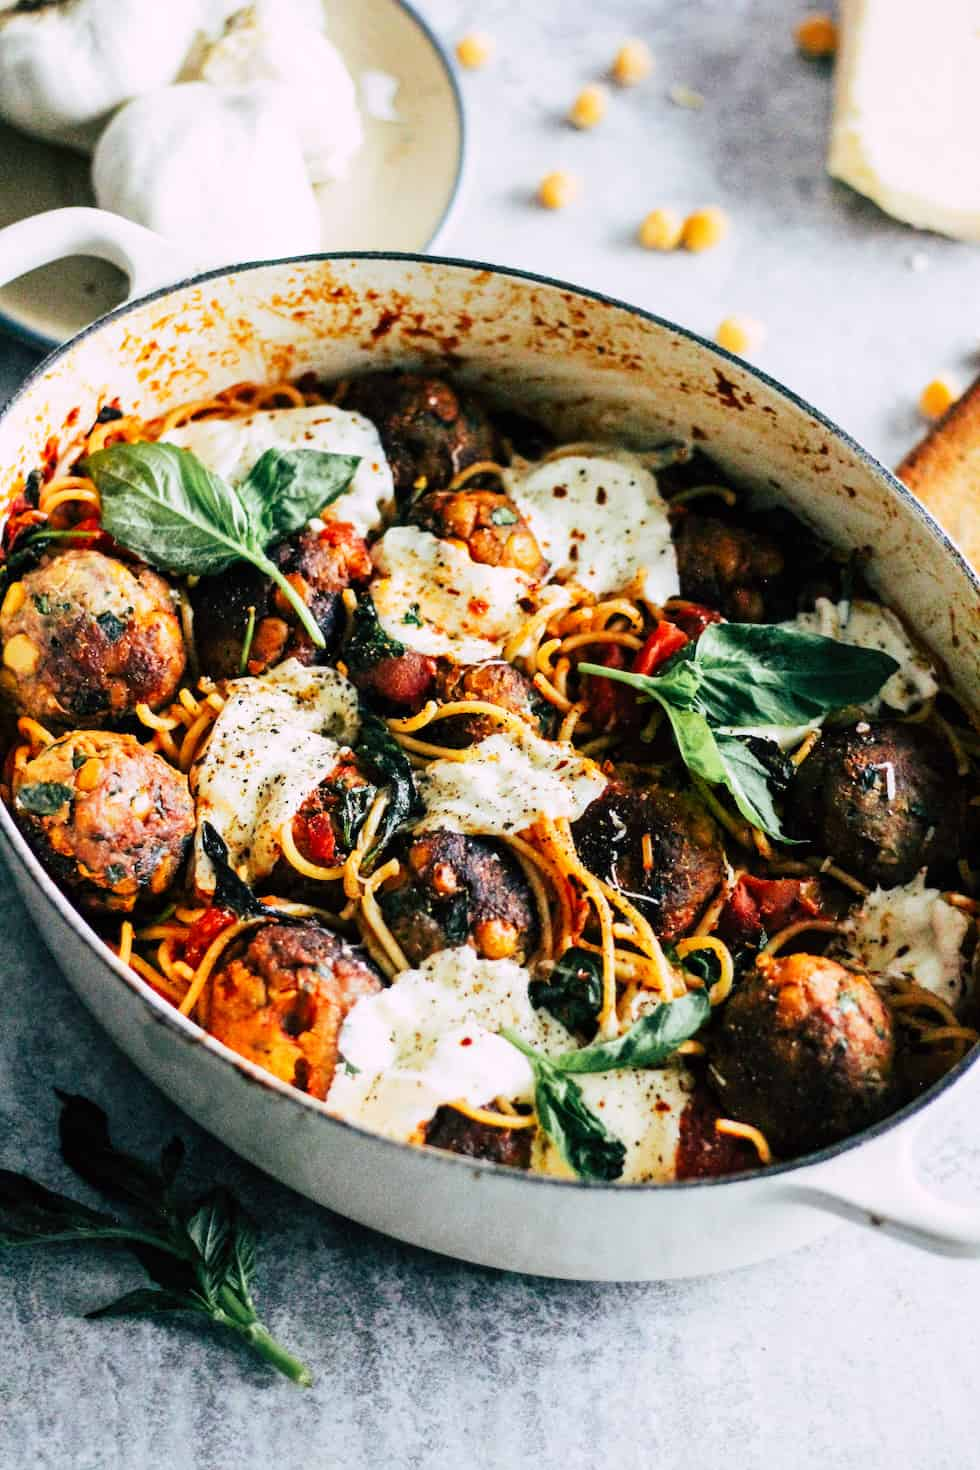 Baked spaghetti and meatballs in white ceramic pot with chickpeas and plate of garlic in the background.